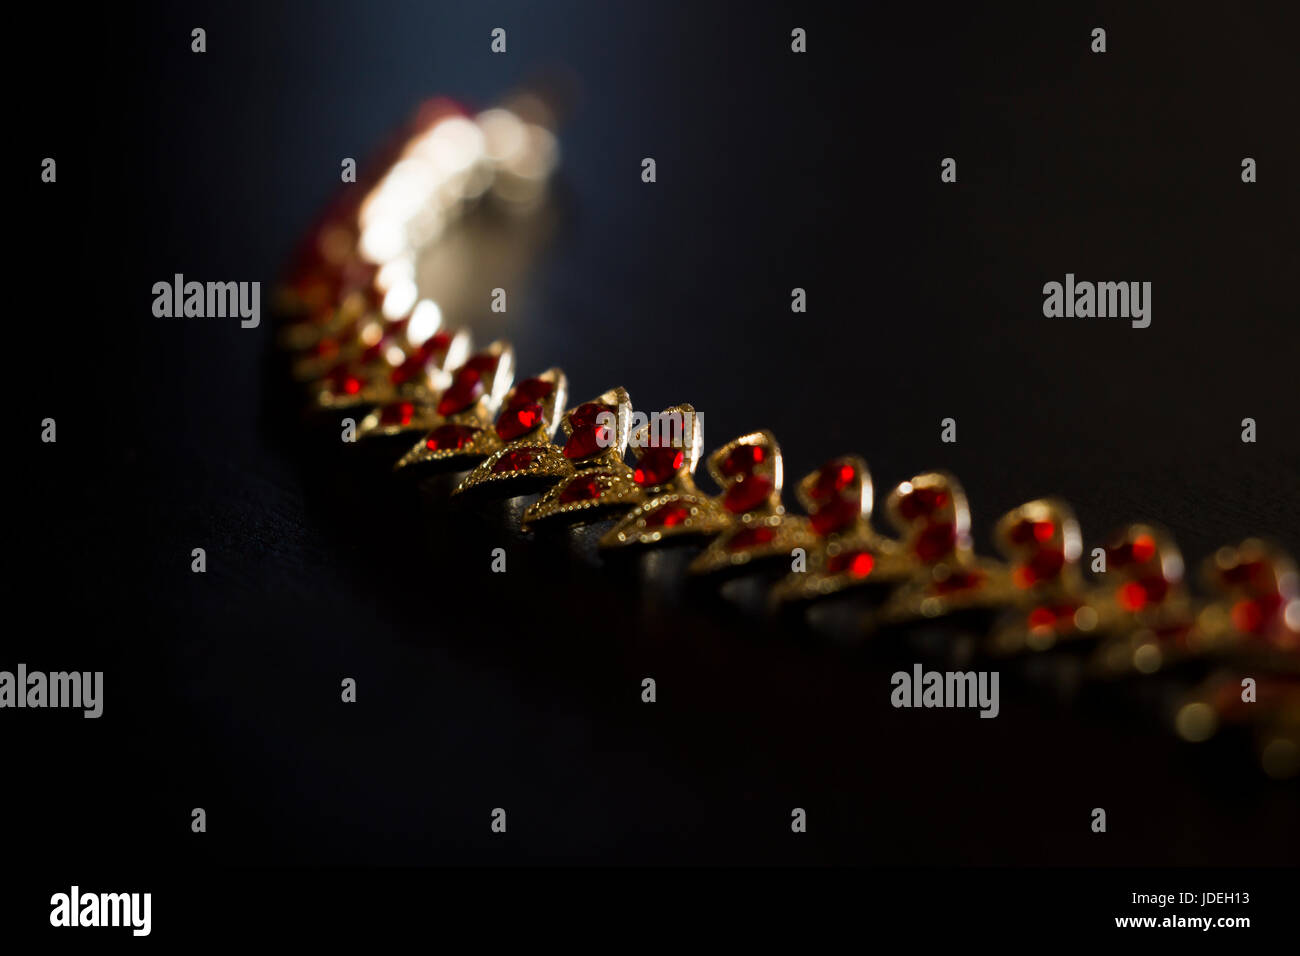 Gold necklace with red stones close-up on a black background Stock Photo